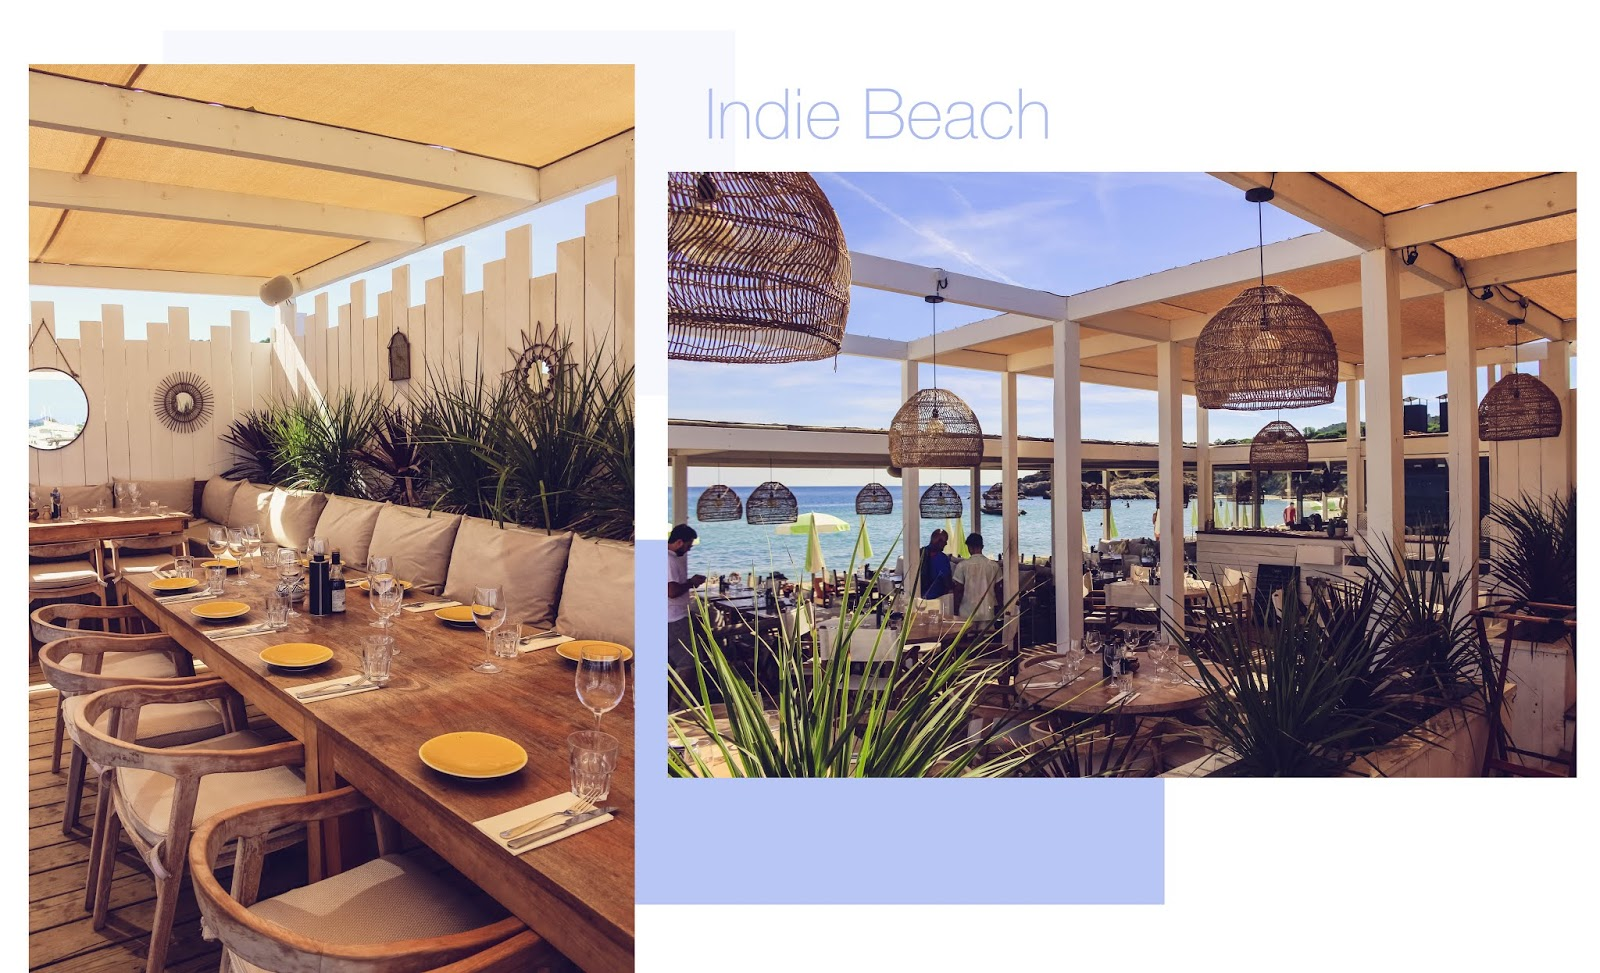 Indie Beach Ramatuelle blog food